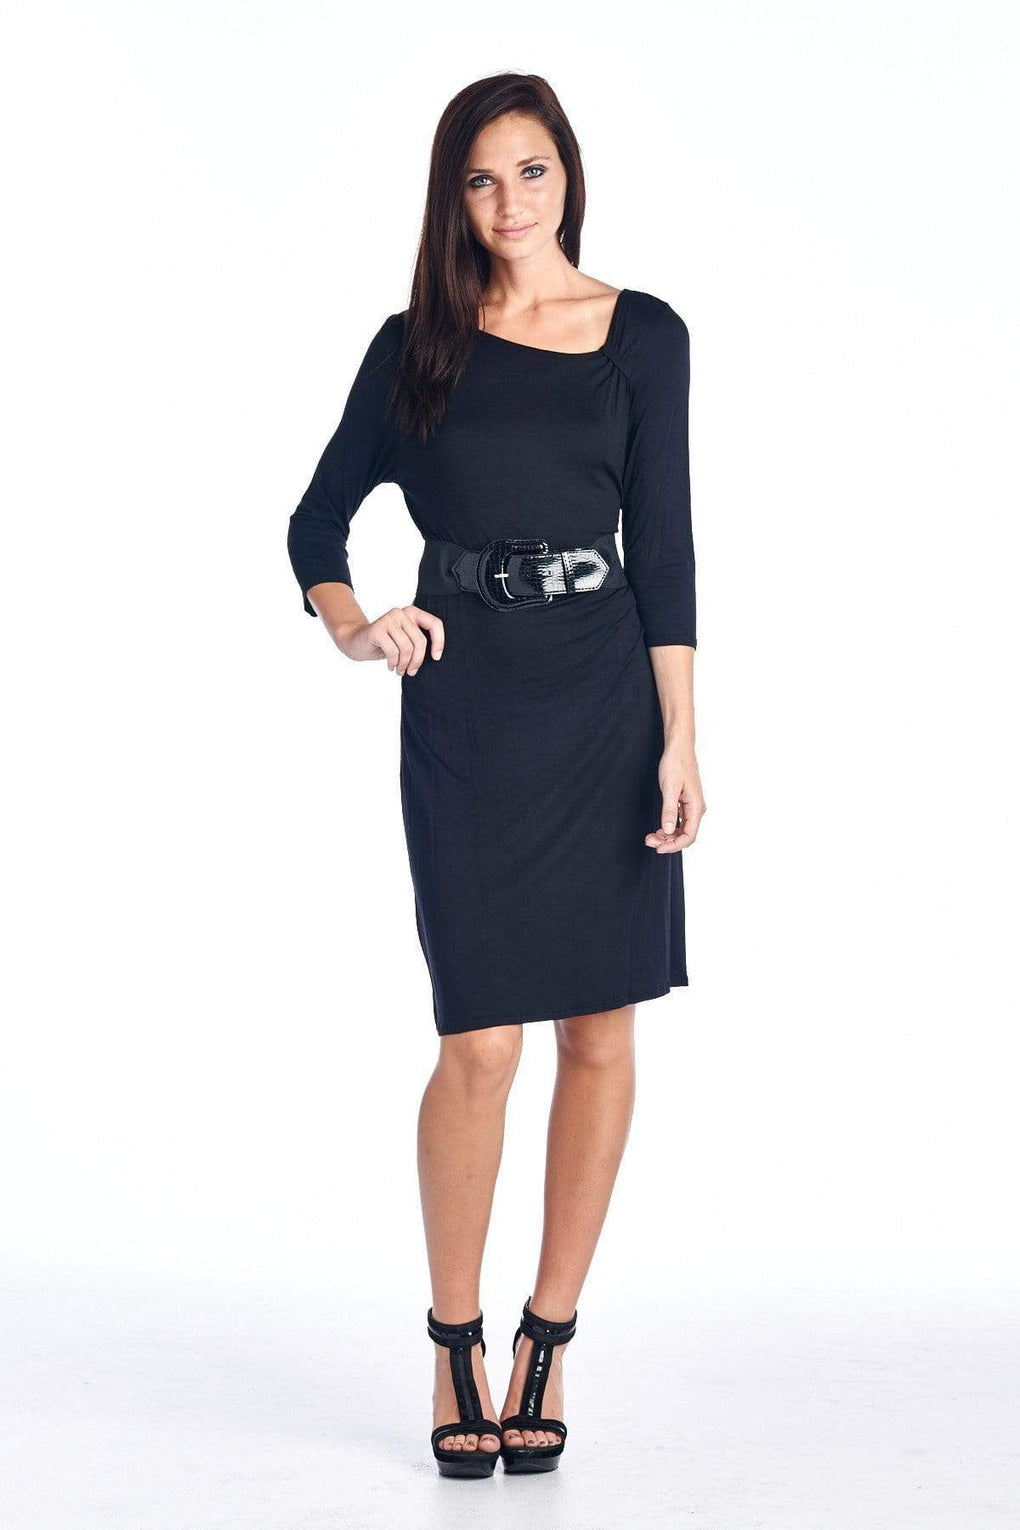 Women's Asymmetrical Neck 3/4 Three Quarter Sleeve Dress with Belt Trim - Danish Fashion & Living Online Store SALE